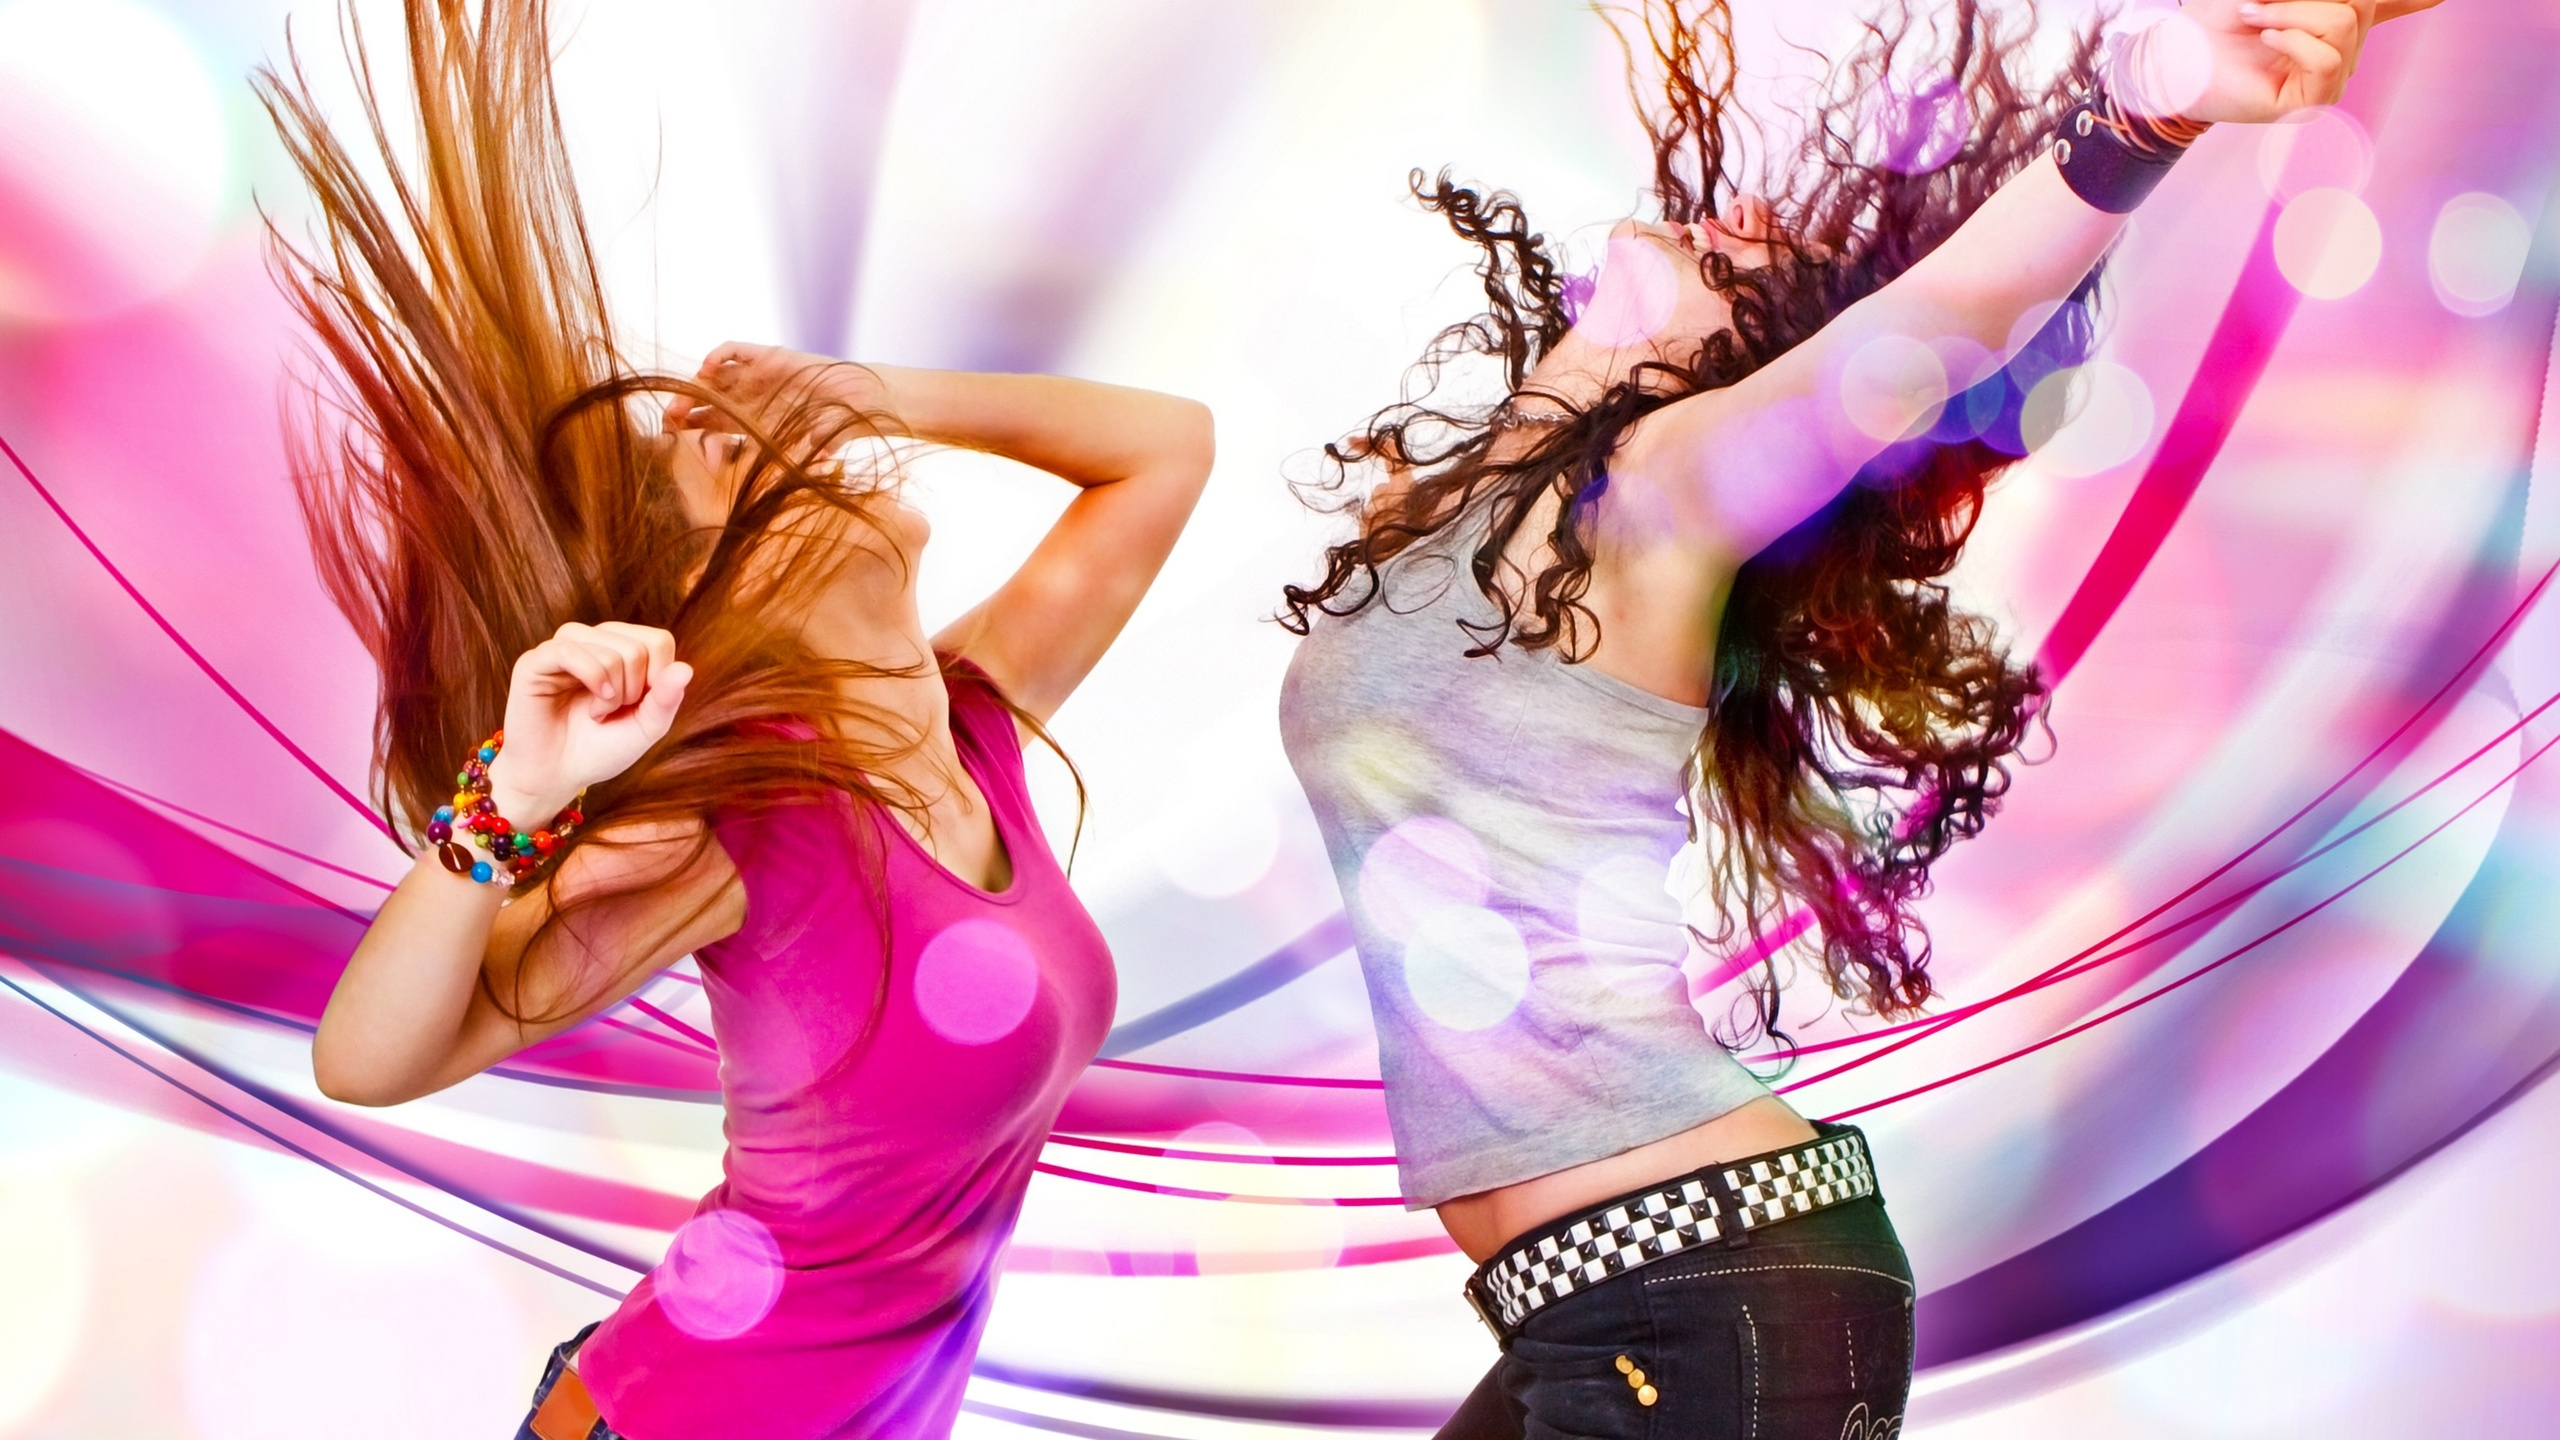 2560x1440 Dance, Bright, Dancing Girls, Girls, Color Wallpapers and ...